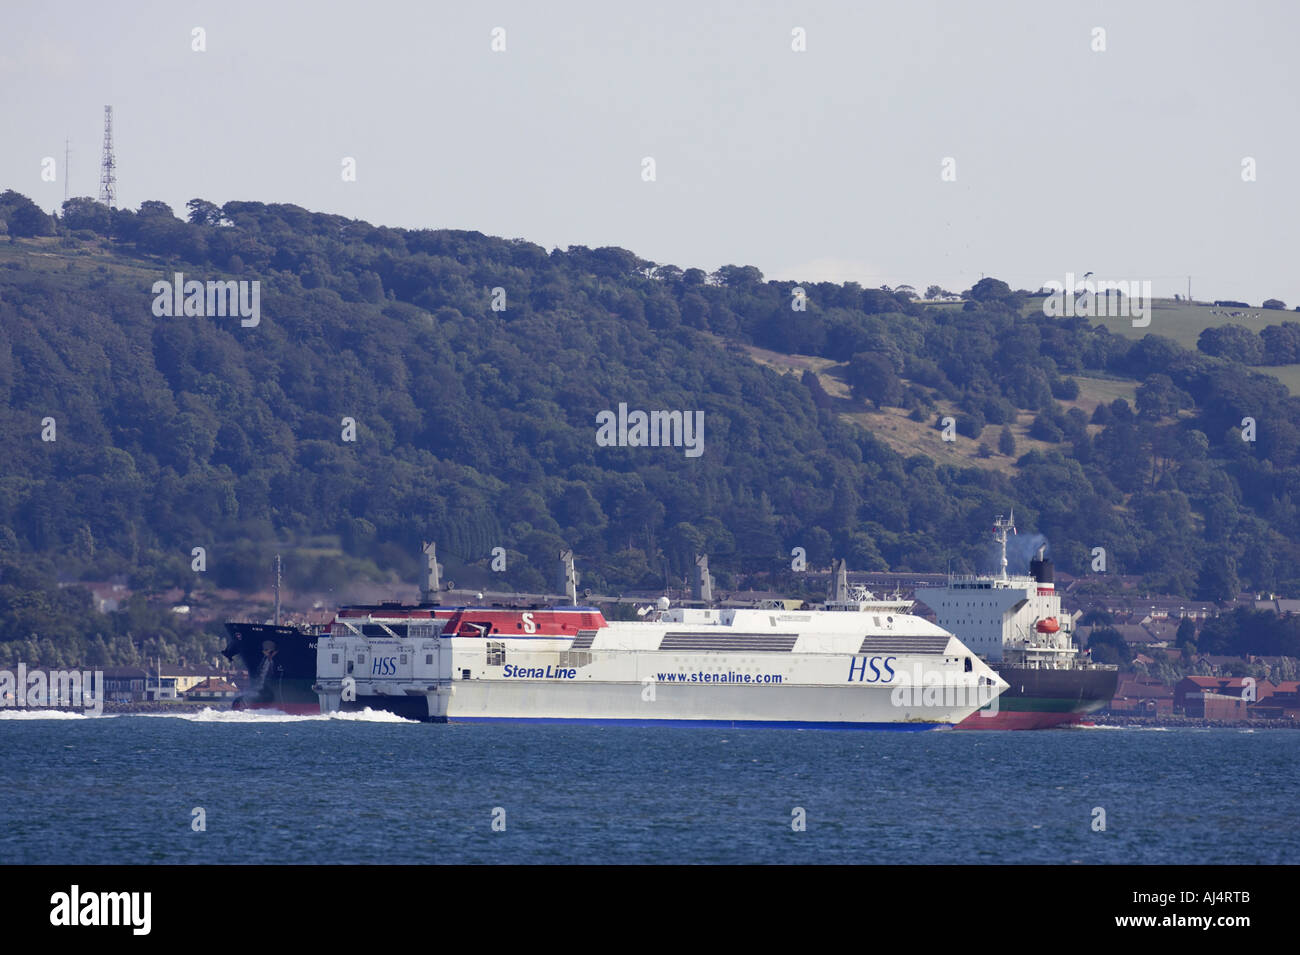 stenaline Stena Voyager HSS fast passenger ferry passes nord voyager bulk carrier ship hollywood belfast lough northern ireland - Stock Image